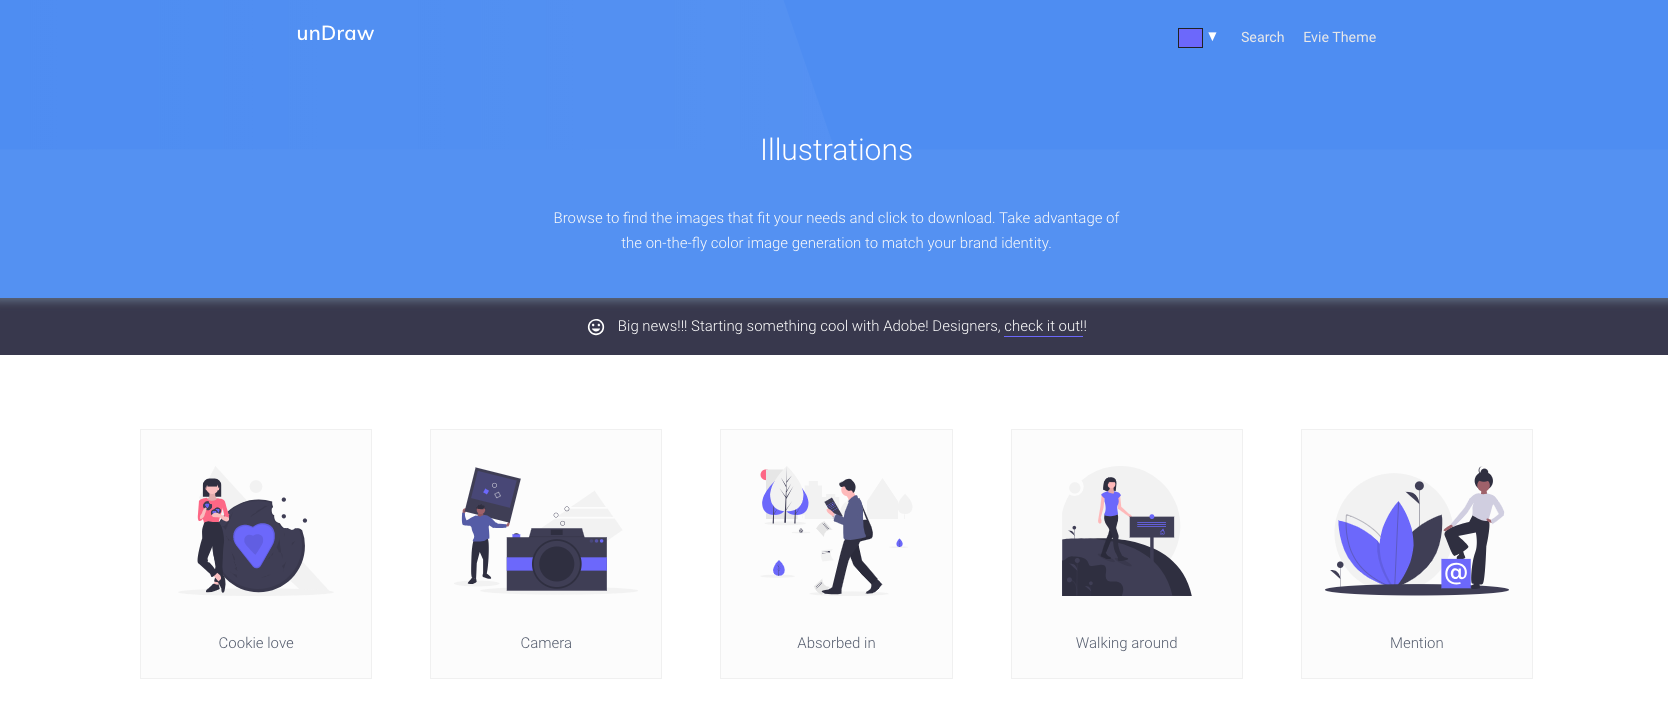 undraw free illustrations